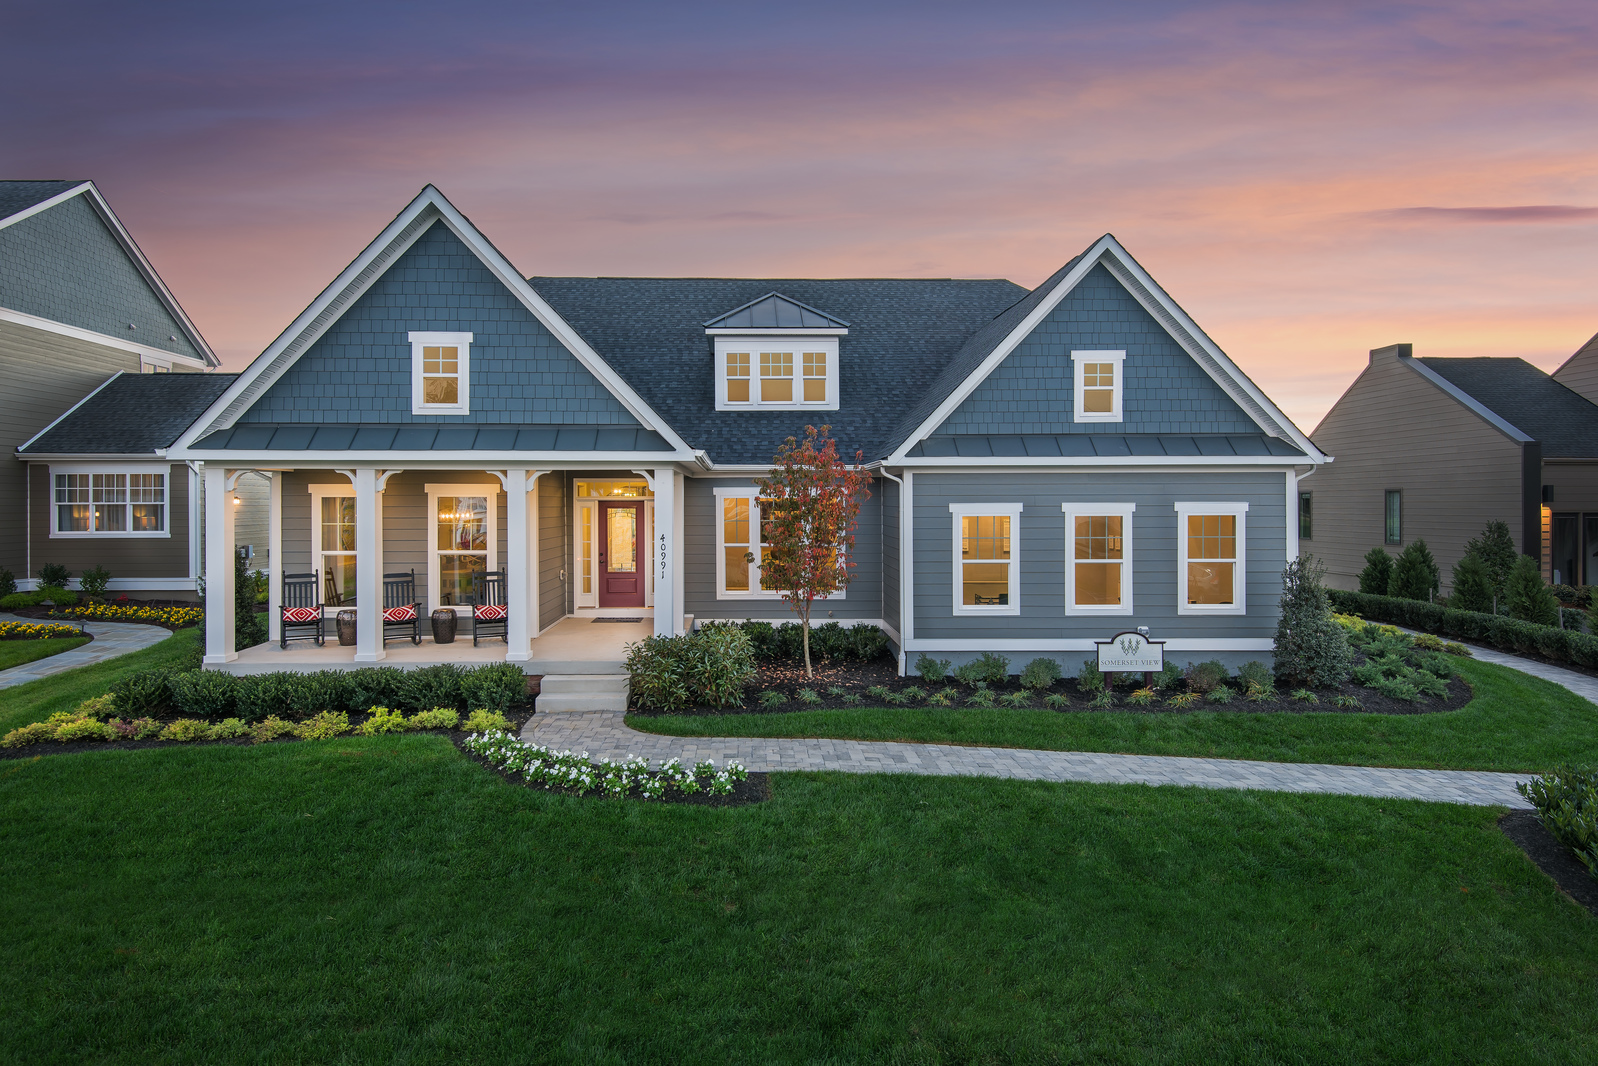 New Carolinaplace Home Model For Sale At Willowsford First